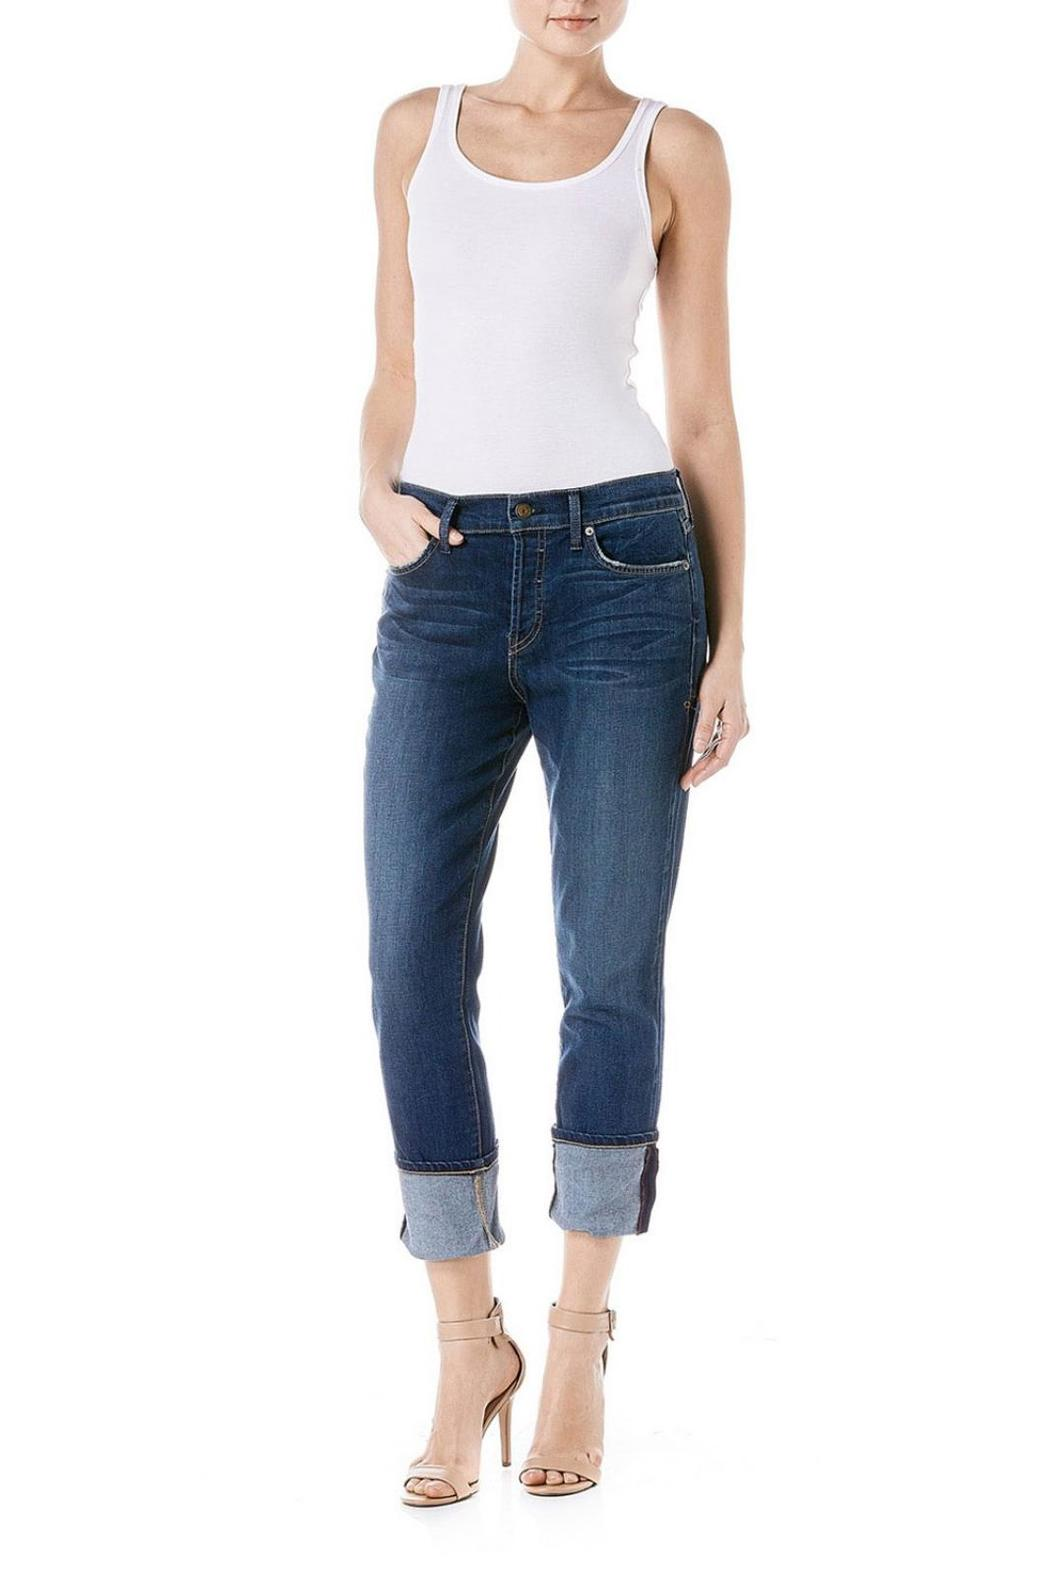 Level 99 Morgan Slouchy Jeans - Main Image